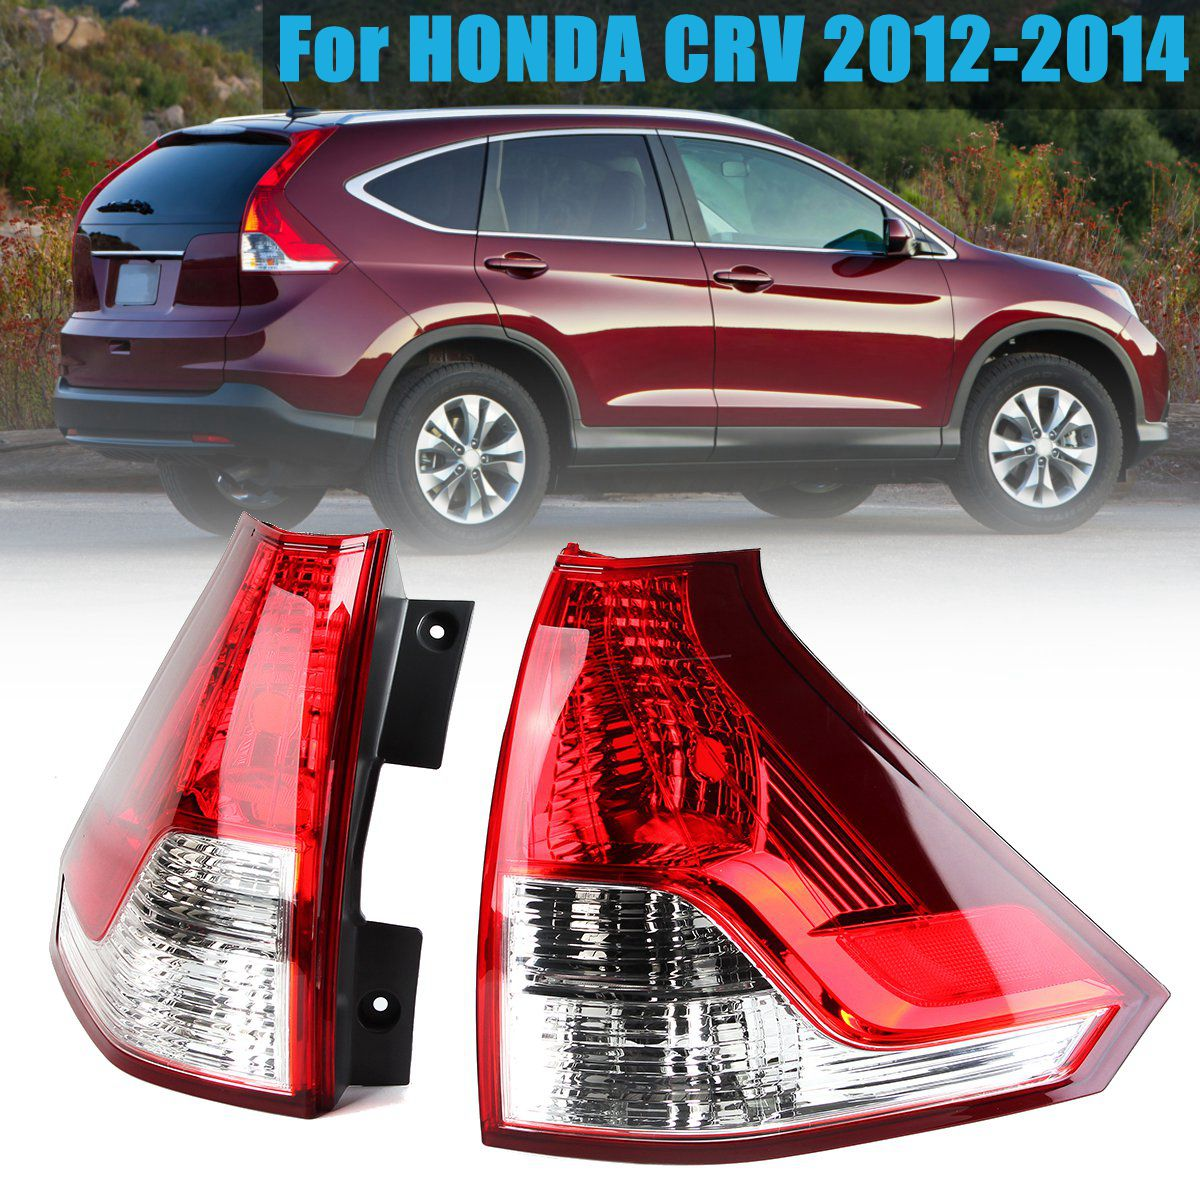 цены Tail Light Clear Red Left/Right Tail Rear Bumper Light LED Brake Light Tail Lamp for Honda CRV 2012 2013 2014